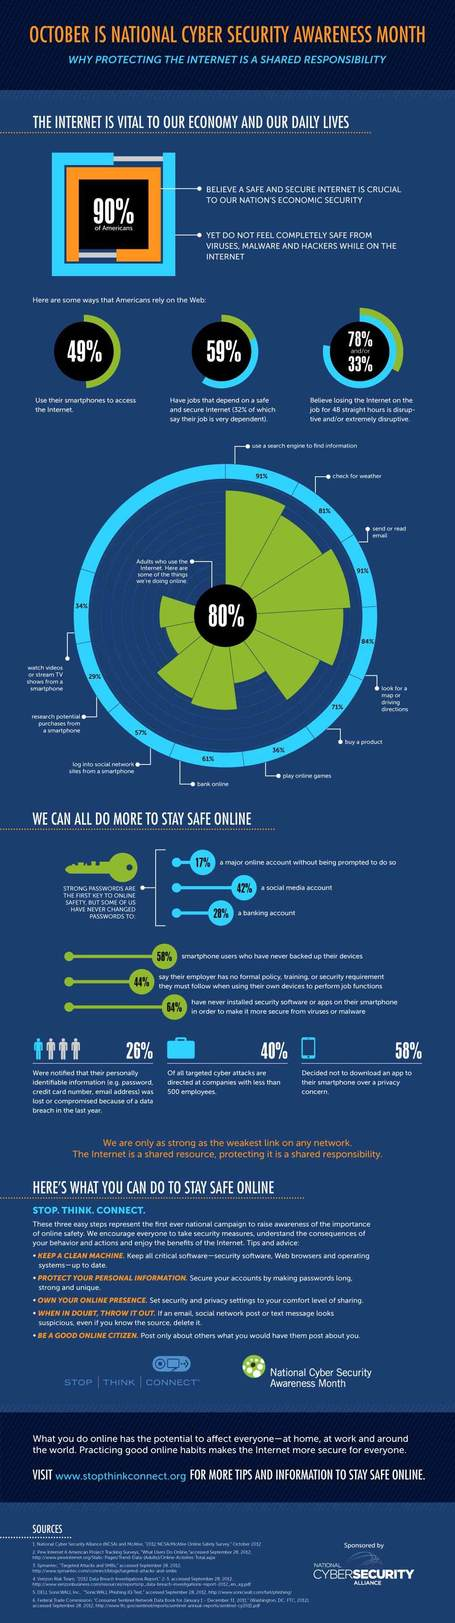 Protecting the Internet Infographic | StaySafeOnline.org | Wiki_Universe | Scoop.it